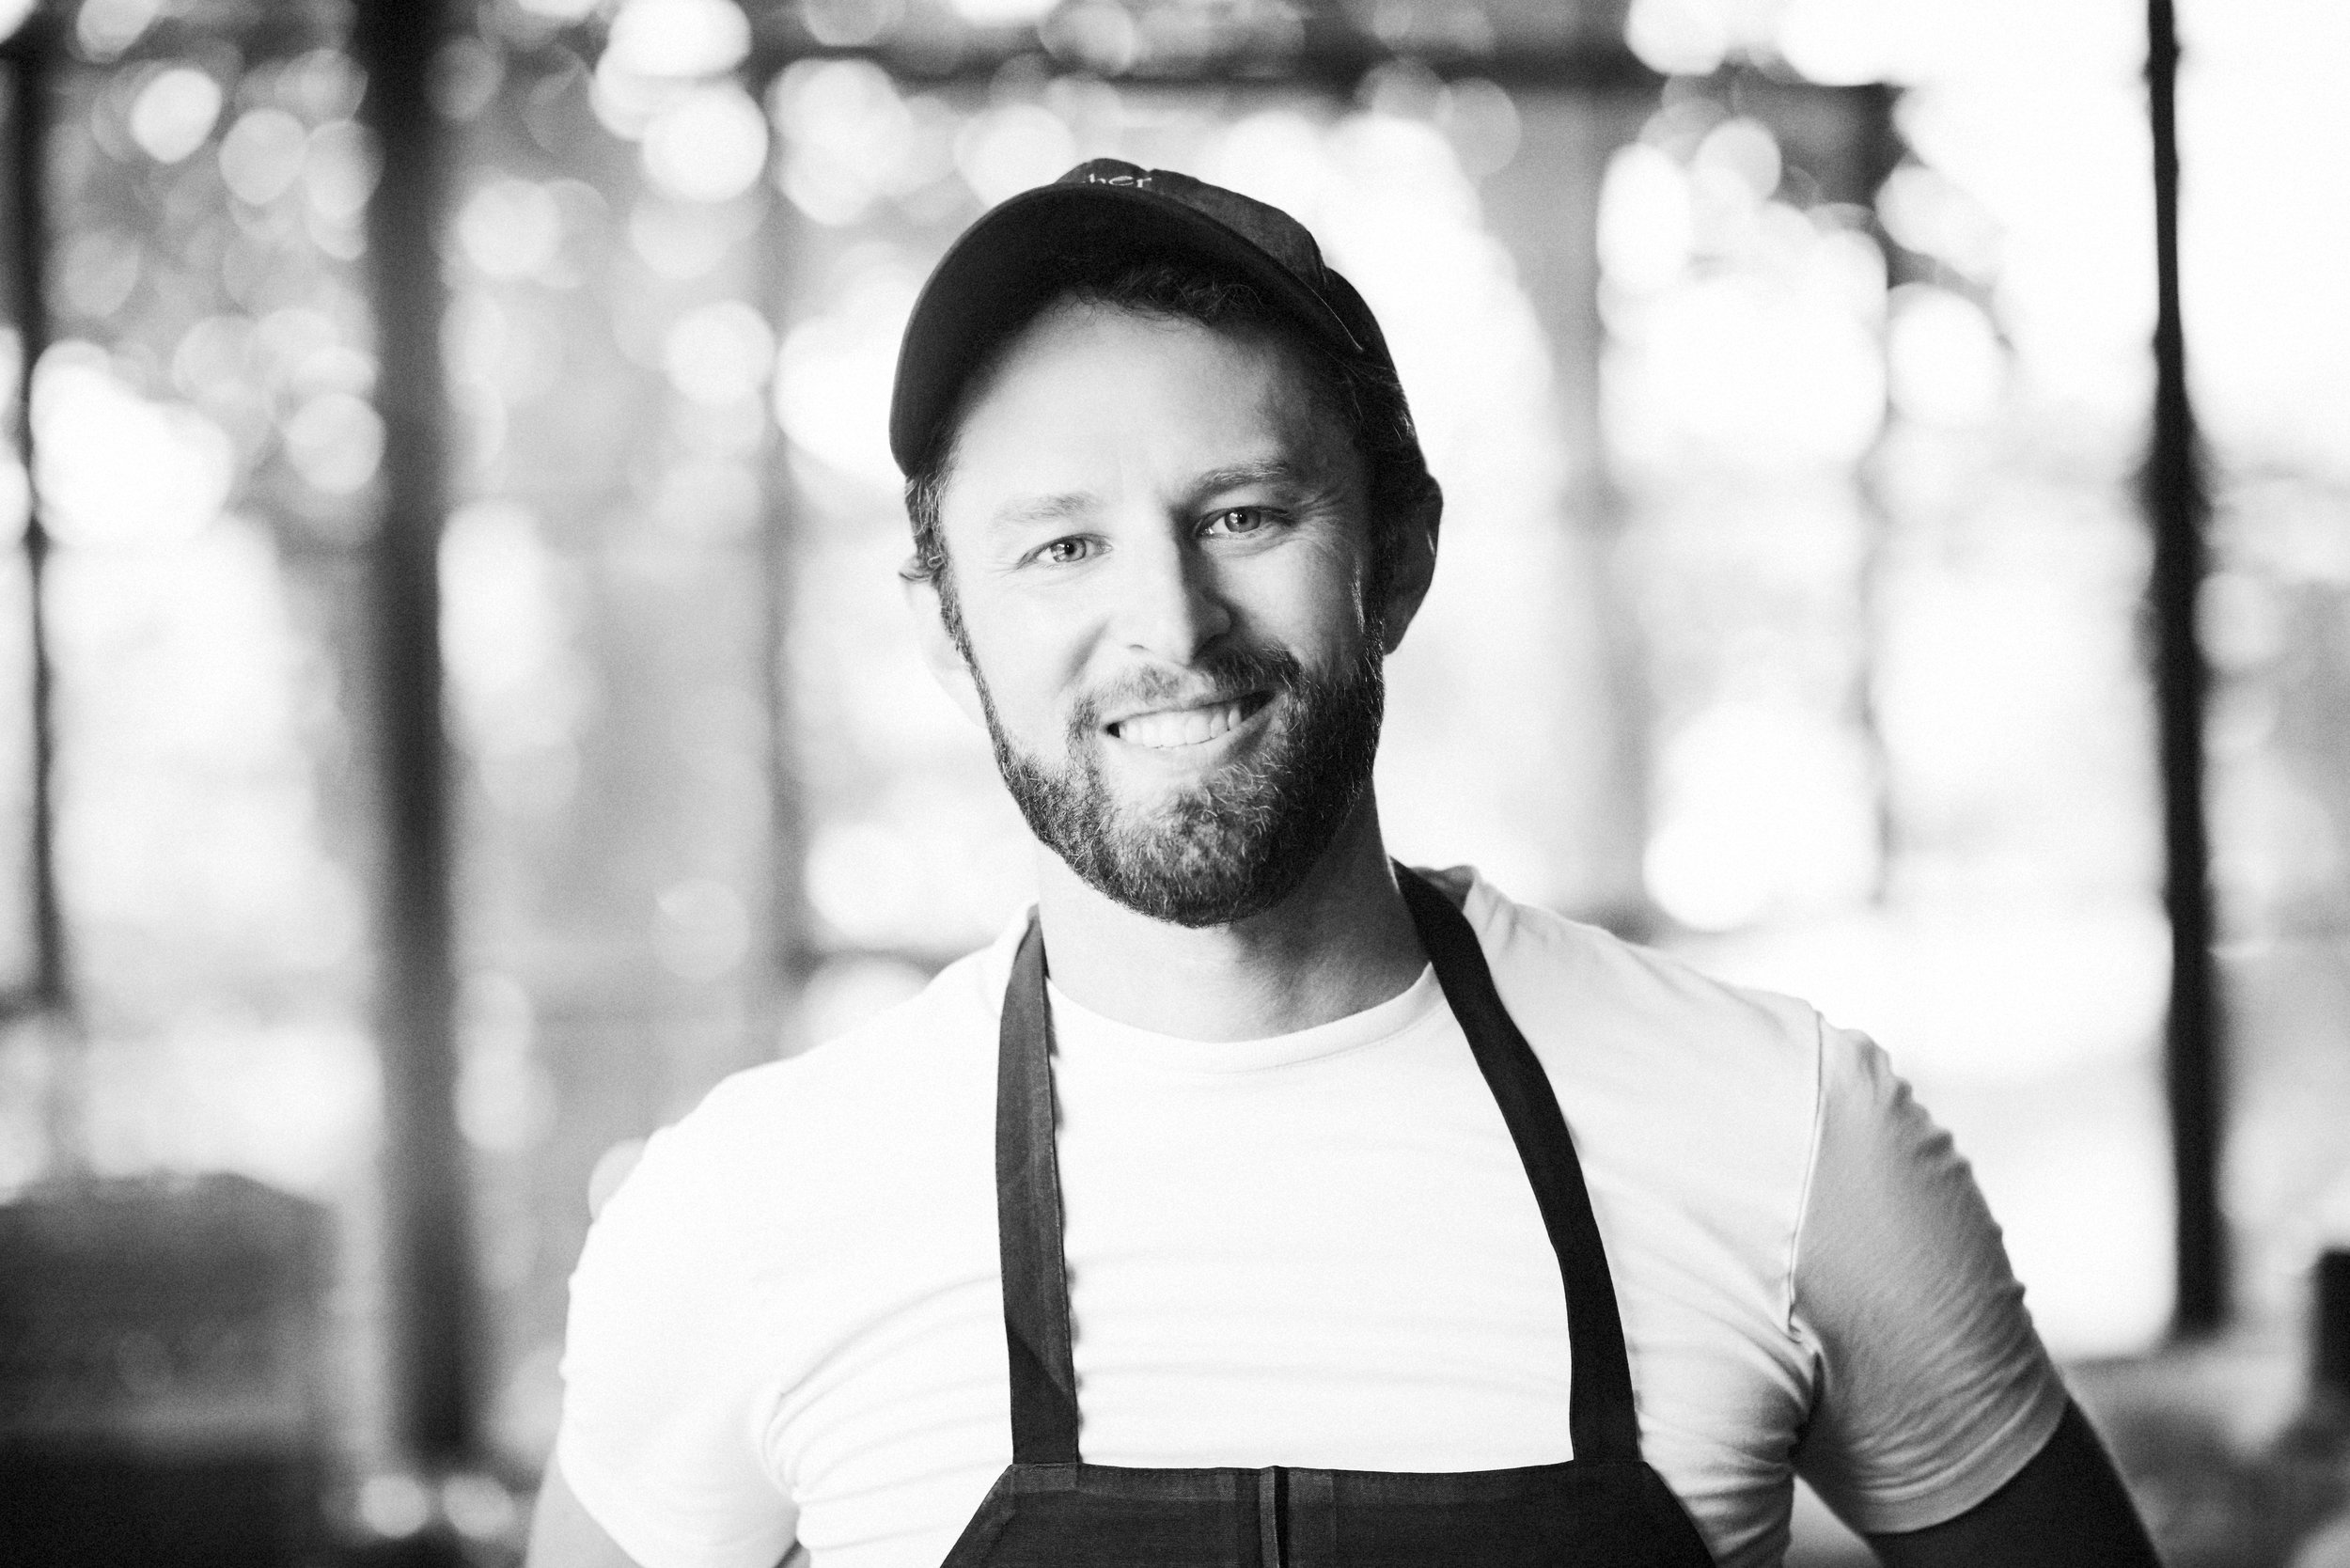 Justin Vetter - Co-Owner of Driftwood Oven